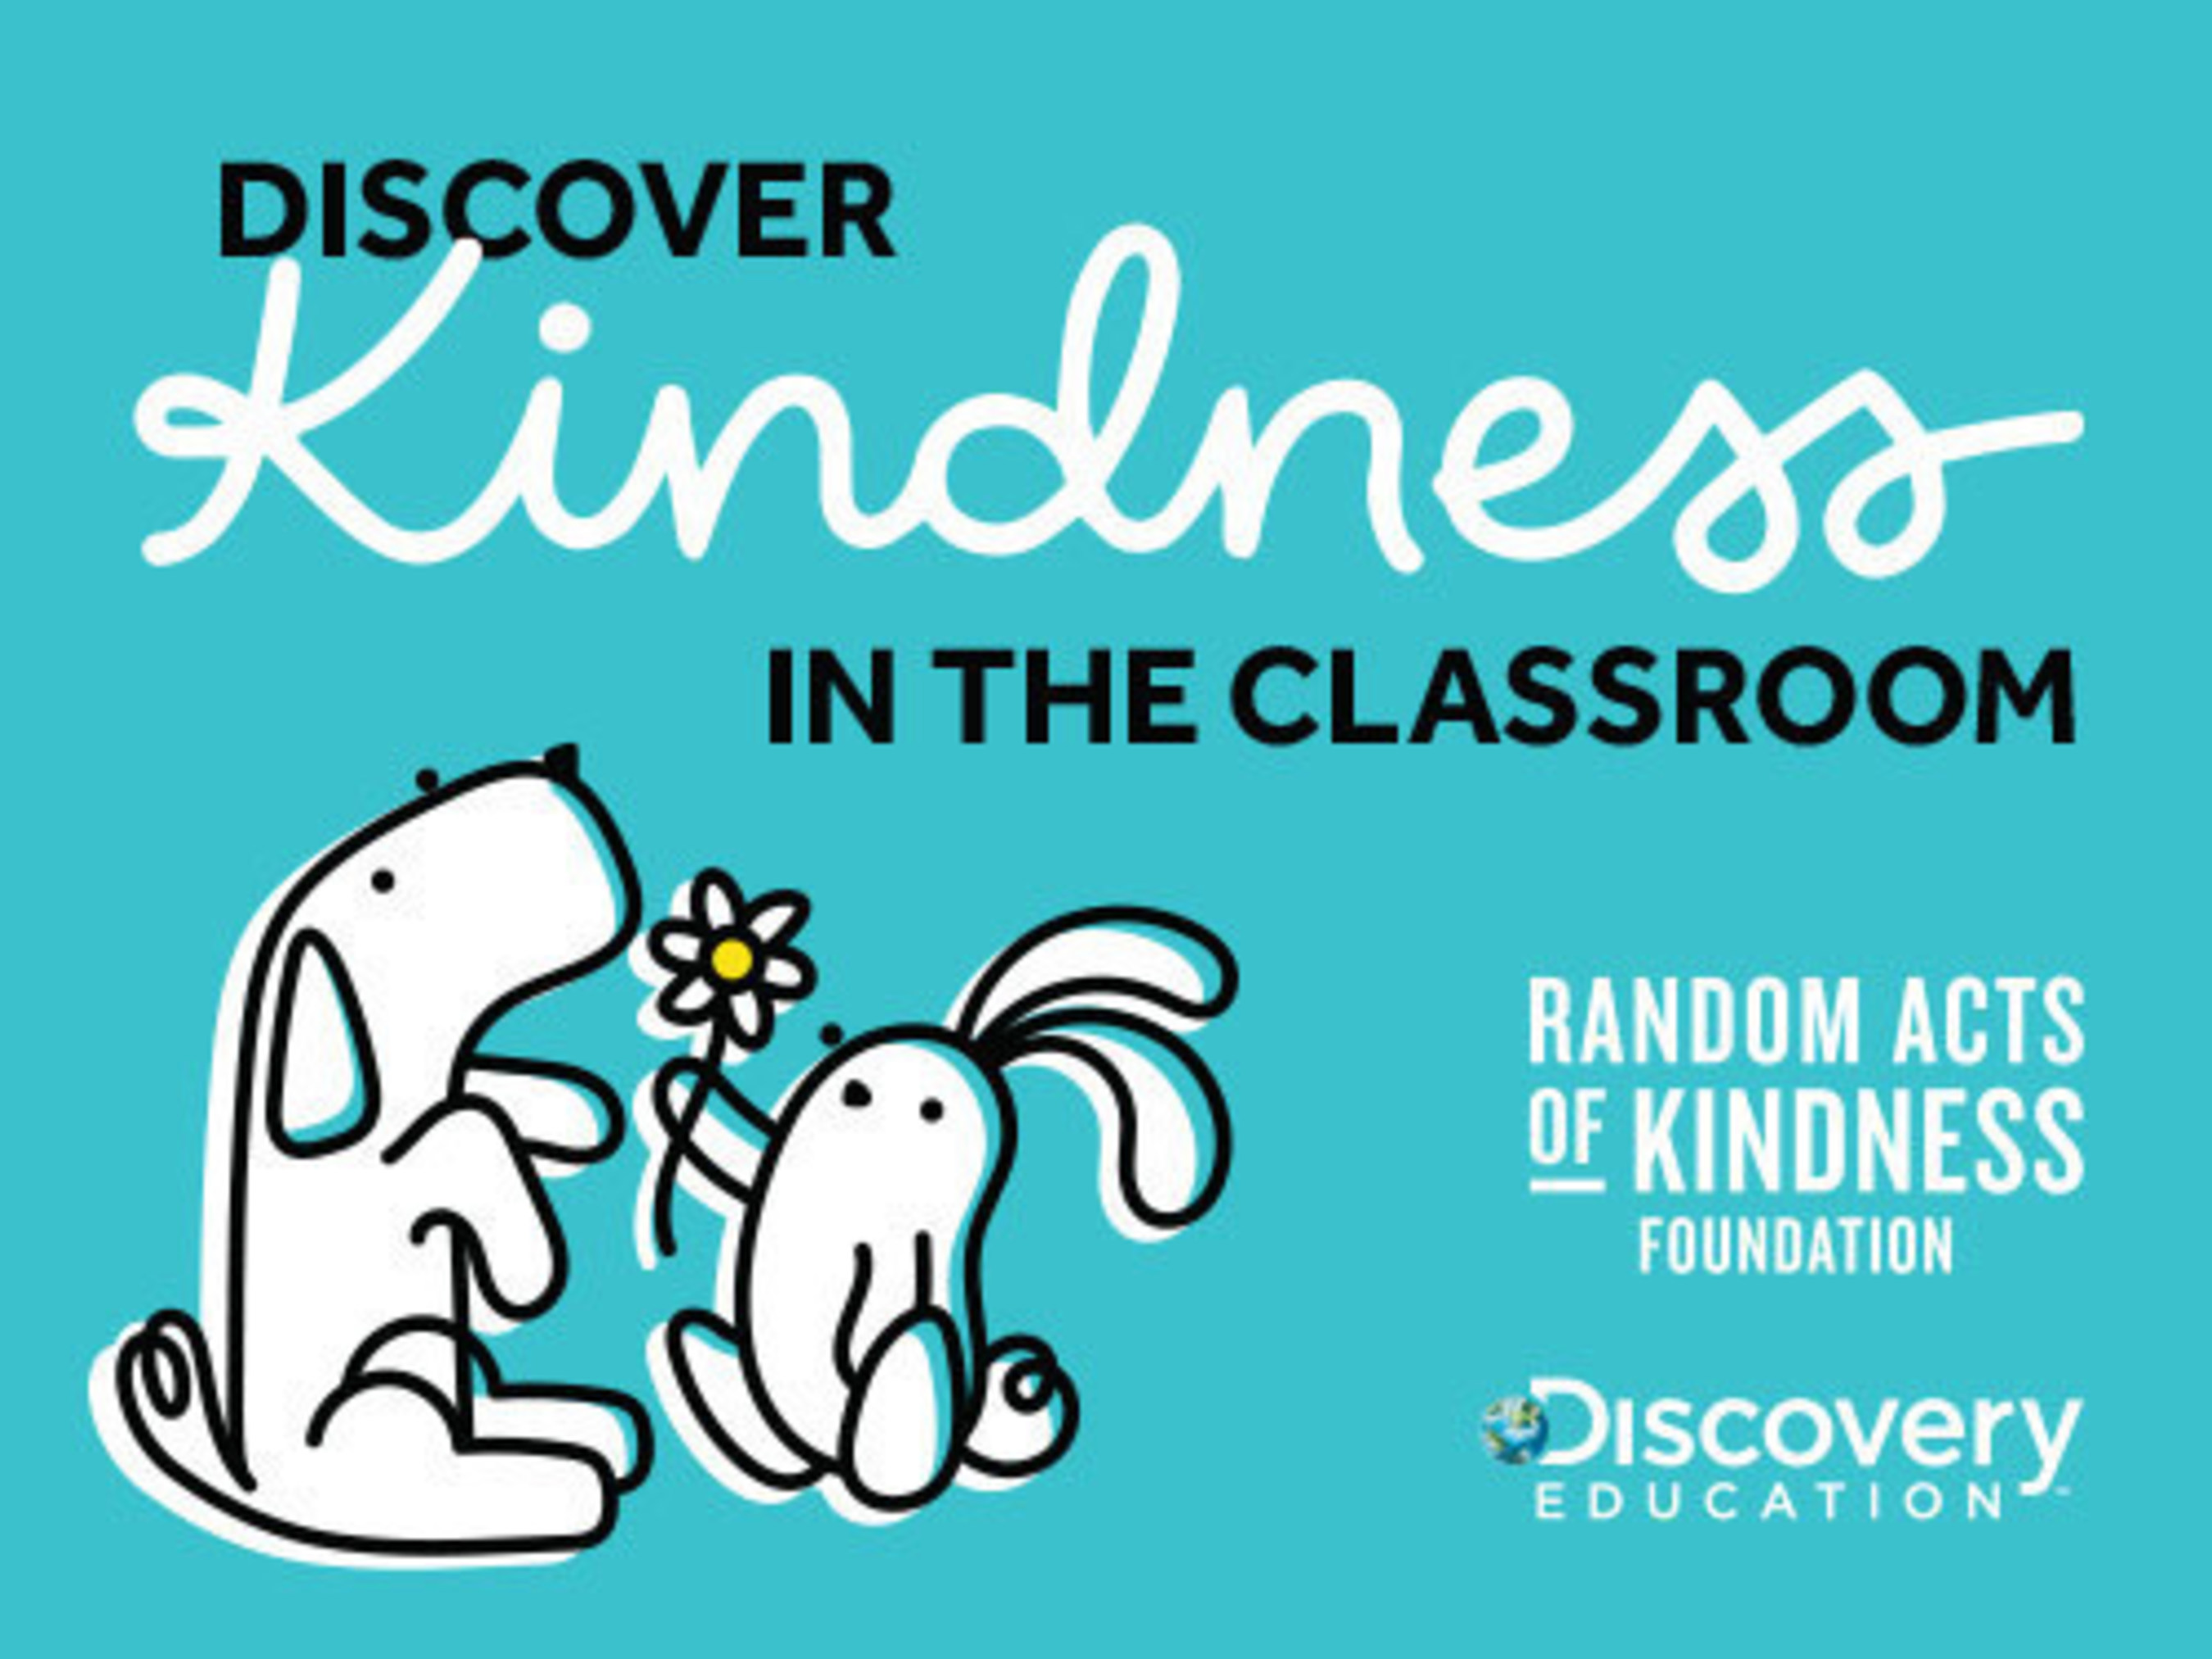 """Available at no cost to classrooms nationwide, """"Discover Kindness in the Classroom"""" offers standards-aligned resources for grades K-8 that teach important social and emotional learning skills, and stimulate thoughtful conversations between educators and students about the importance of kindness in their daily lives."""